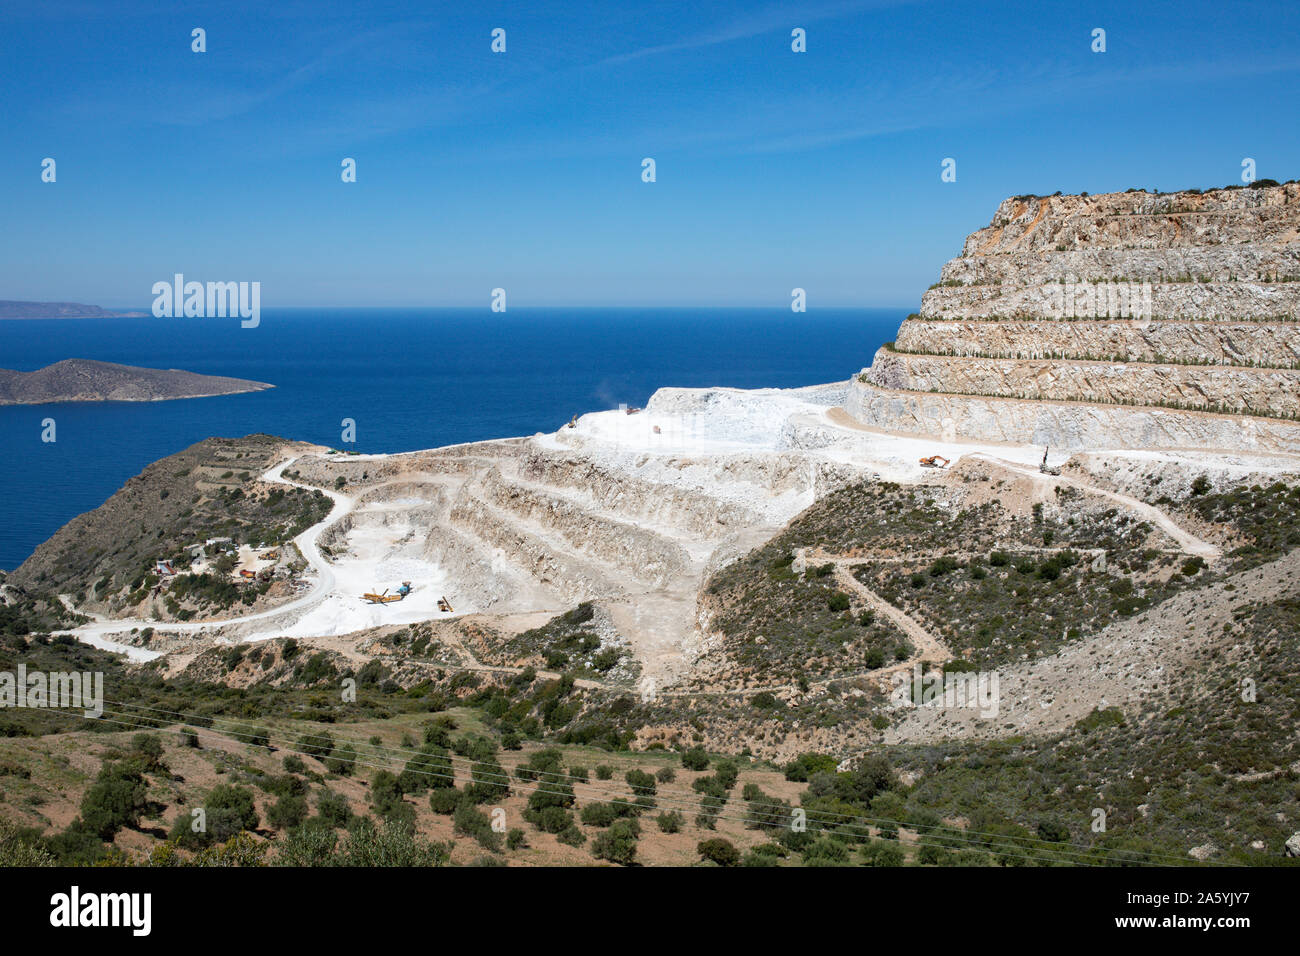 Crete landscape, blue sea and sky on a sunny day. A Quarry - rocks and green hills. Stock Photo